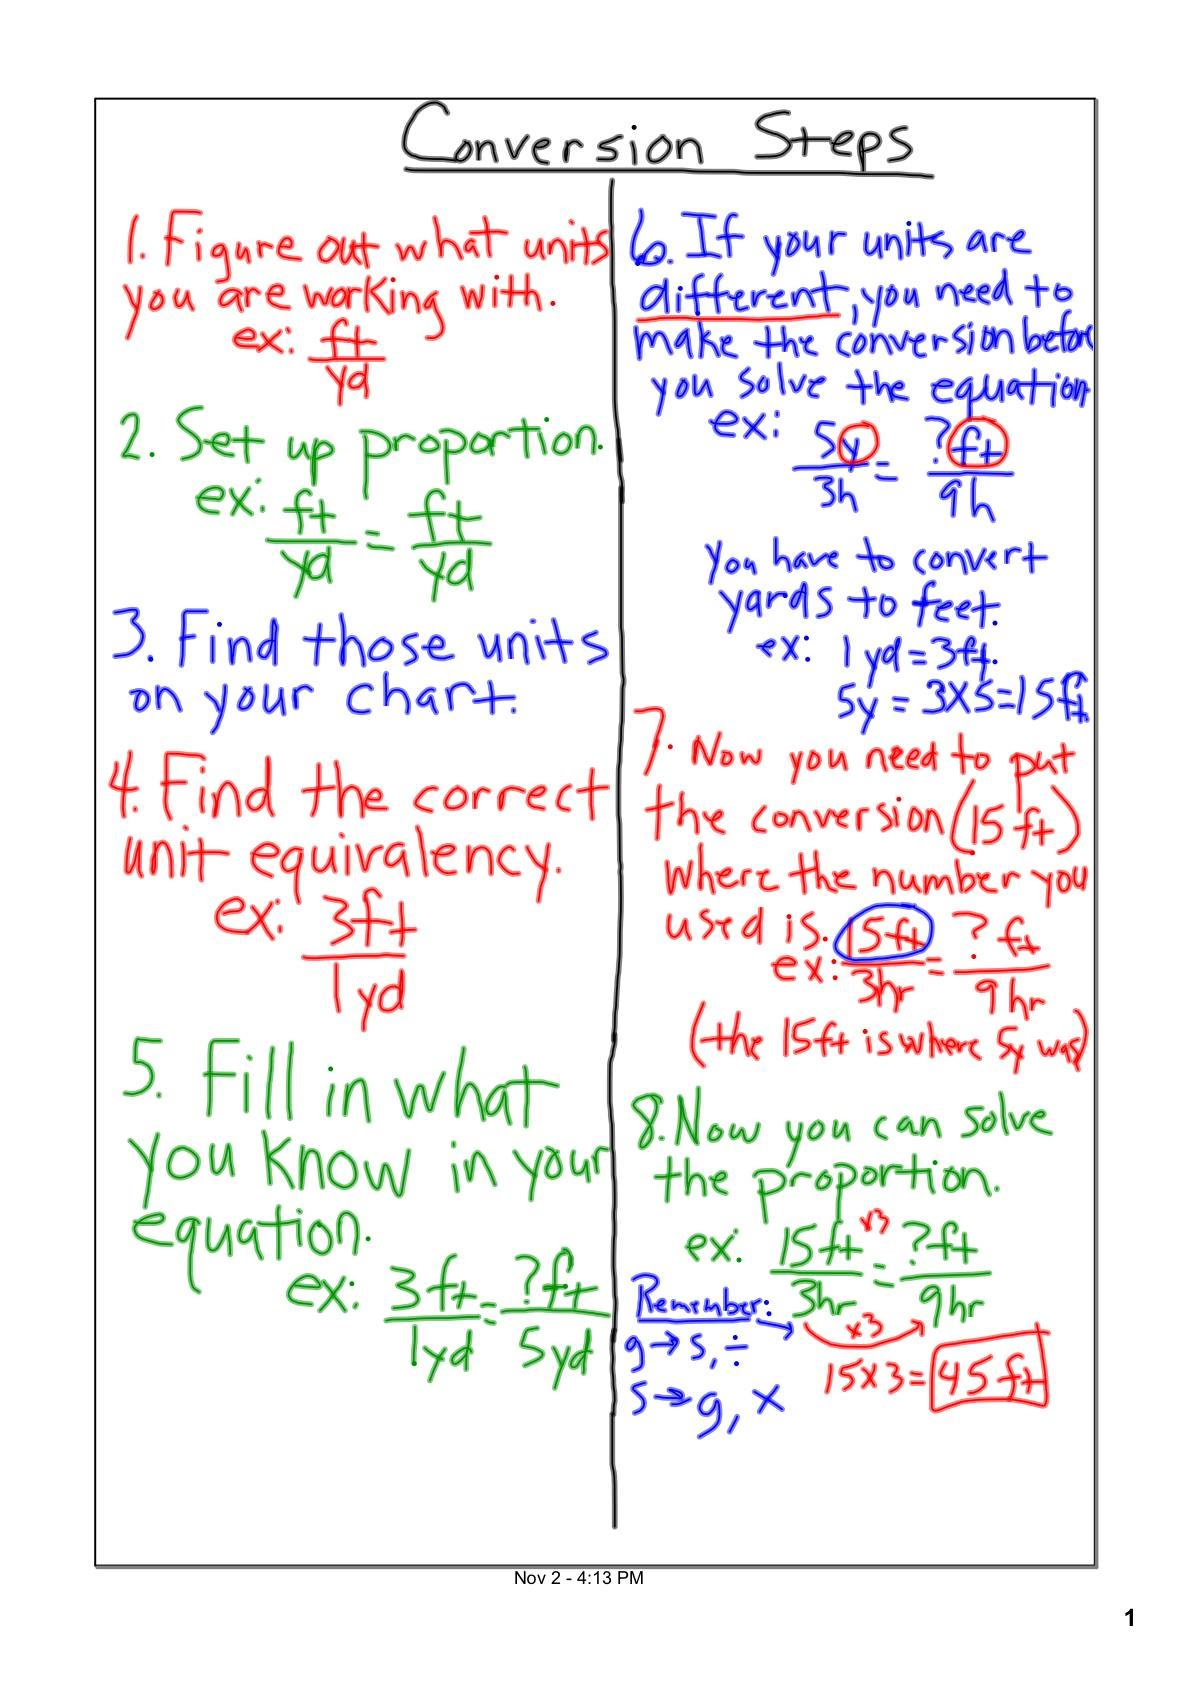 Tools hortonshelly 6th grade mathematics chart back side conversion steps geenschuldenfo Choice Image